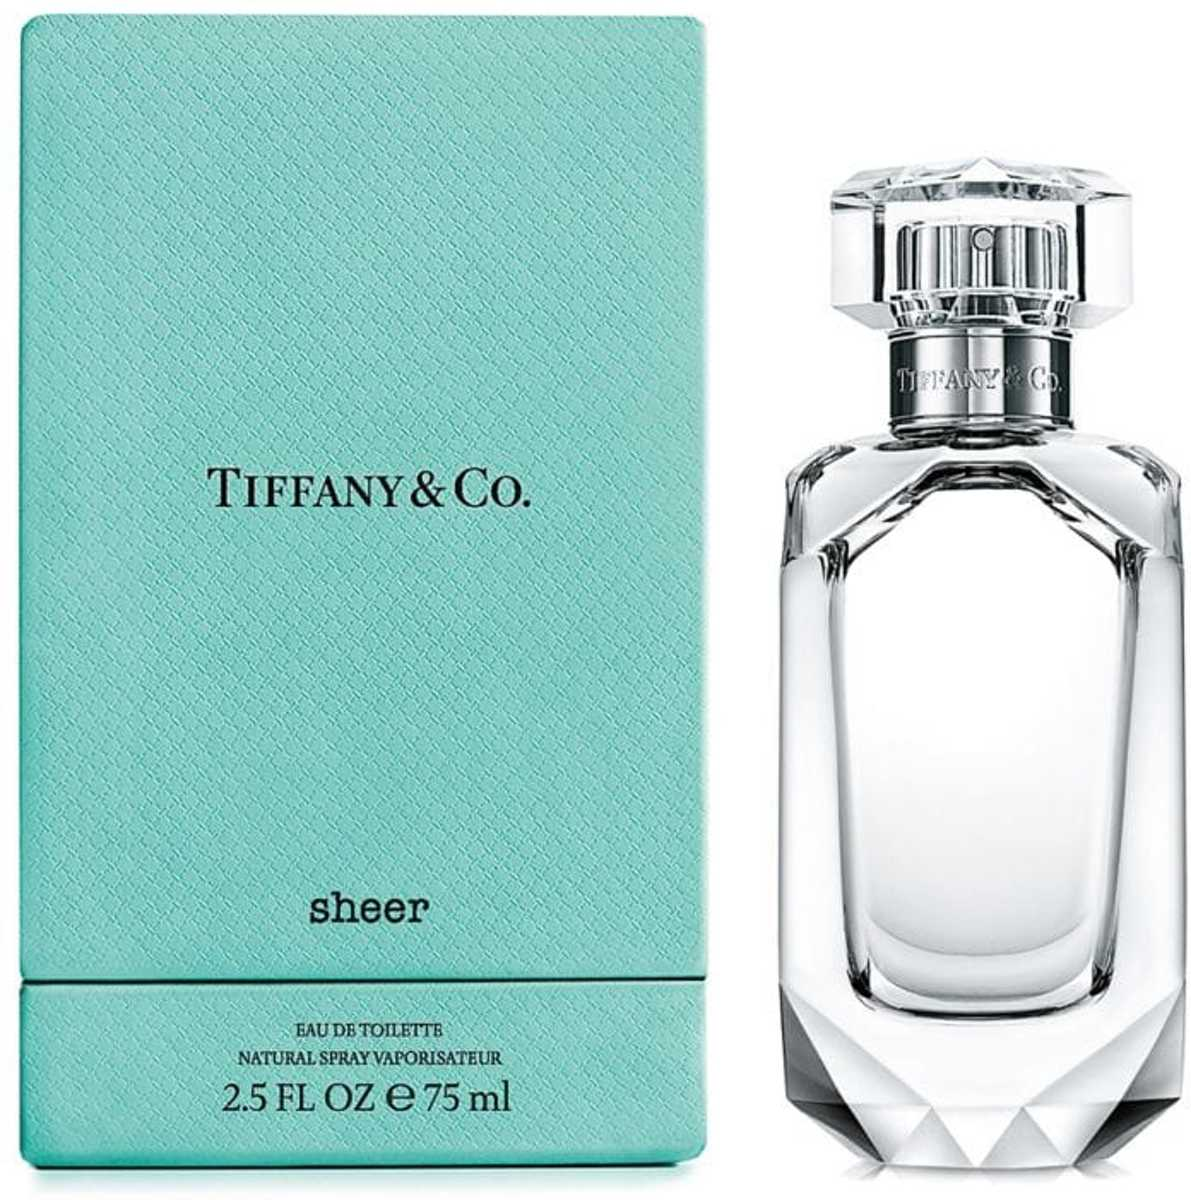 Tiffany & Co. Tiffany Sheer Eau de Toilette 75ml